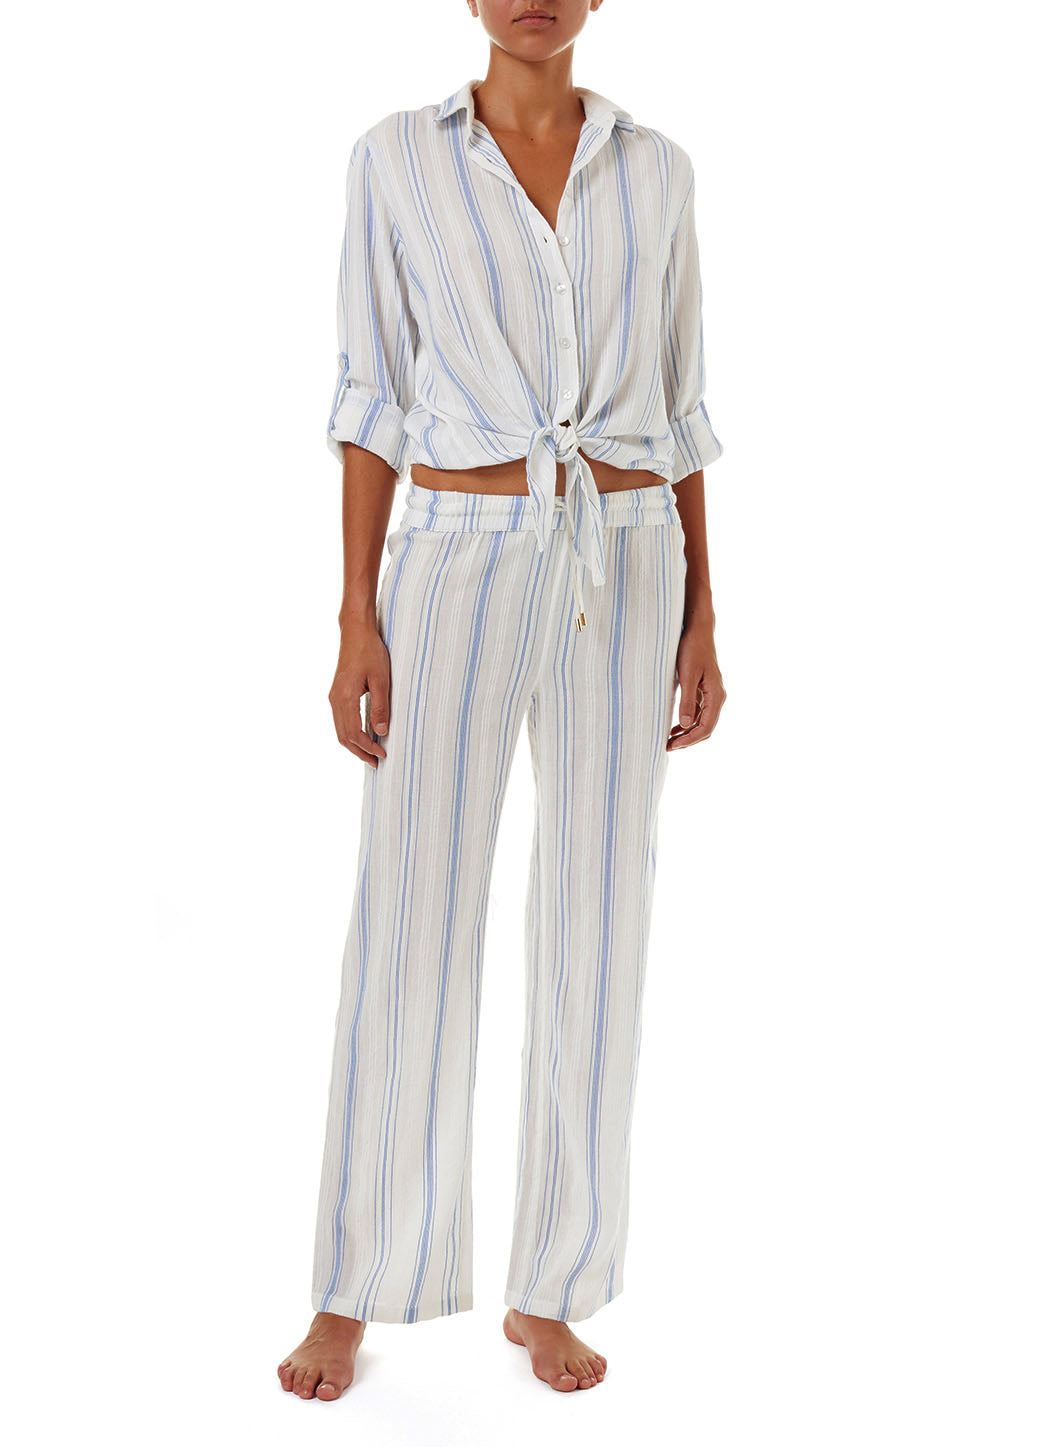 Inny Blue Stripe Cropped Shirt - Melissa Odabash Tops & Bottoms